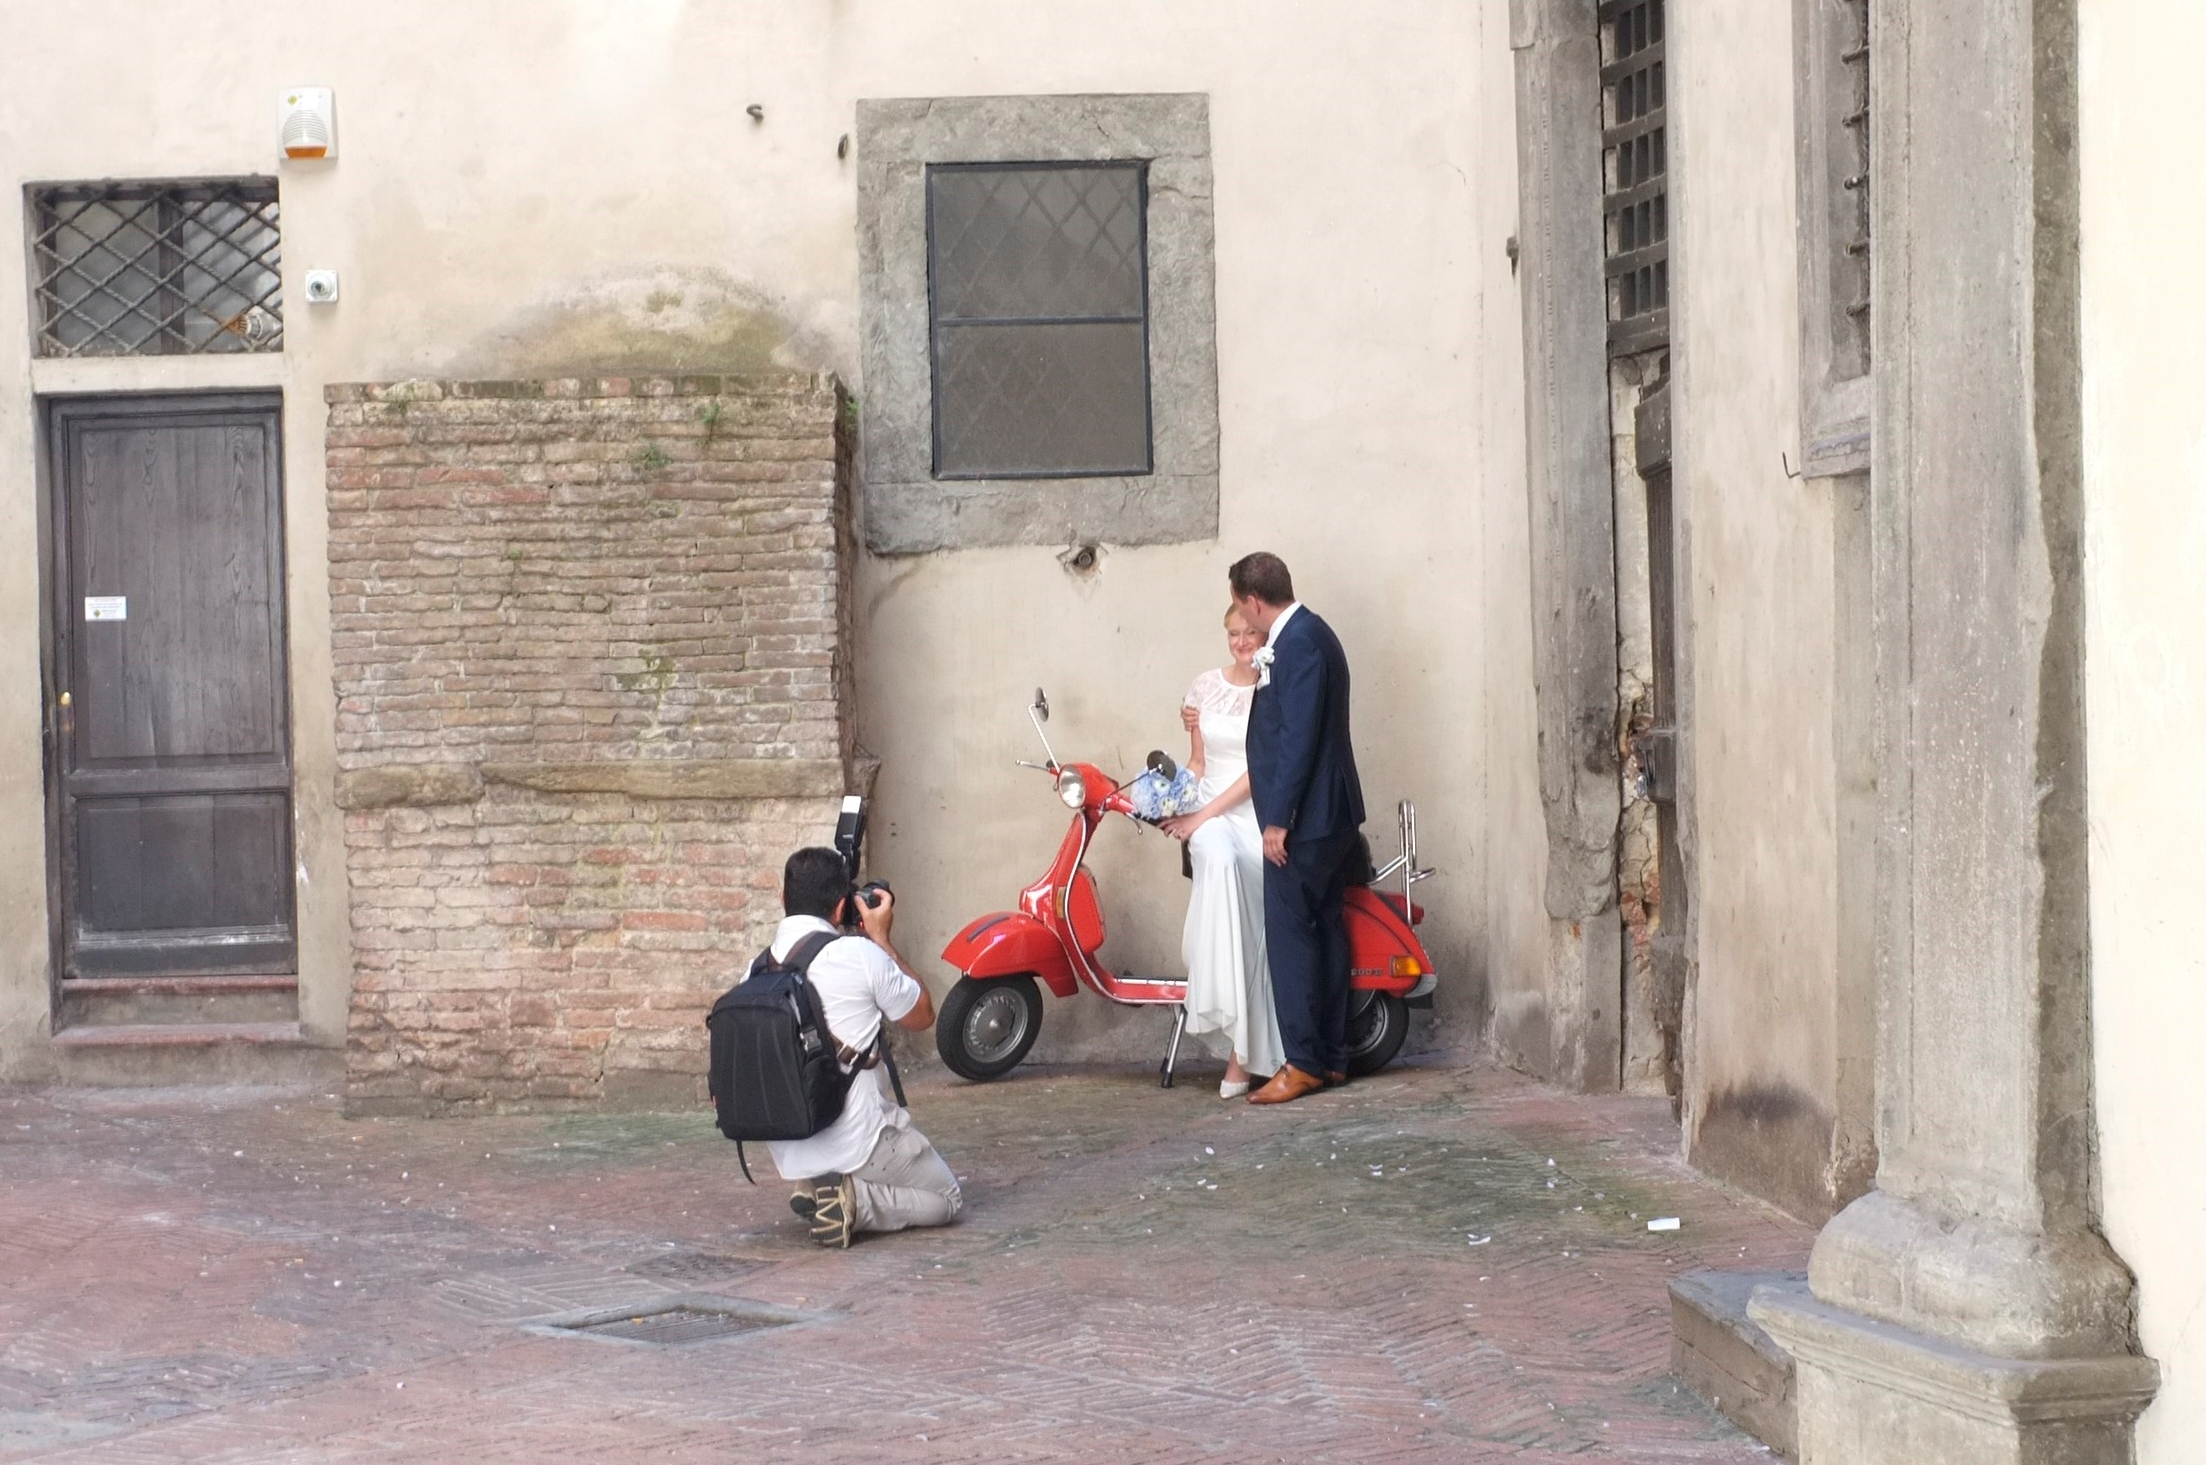 Wedding photoshoot in Sienna, Italy